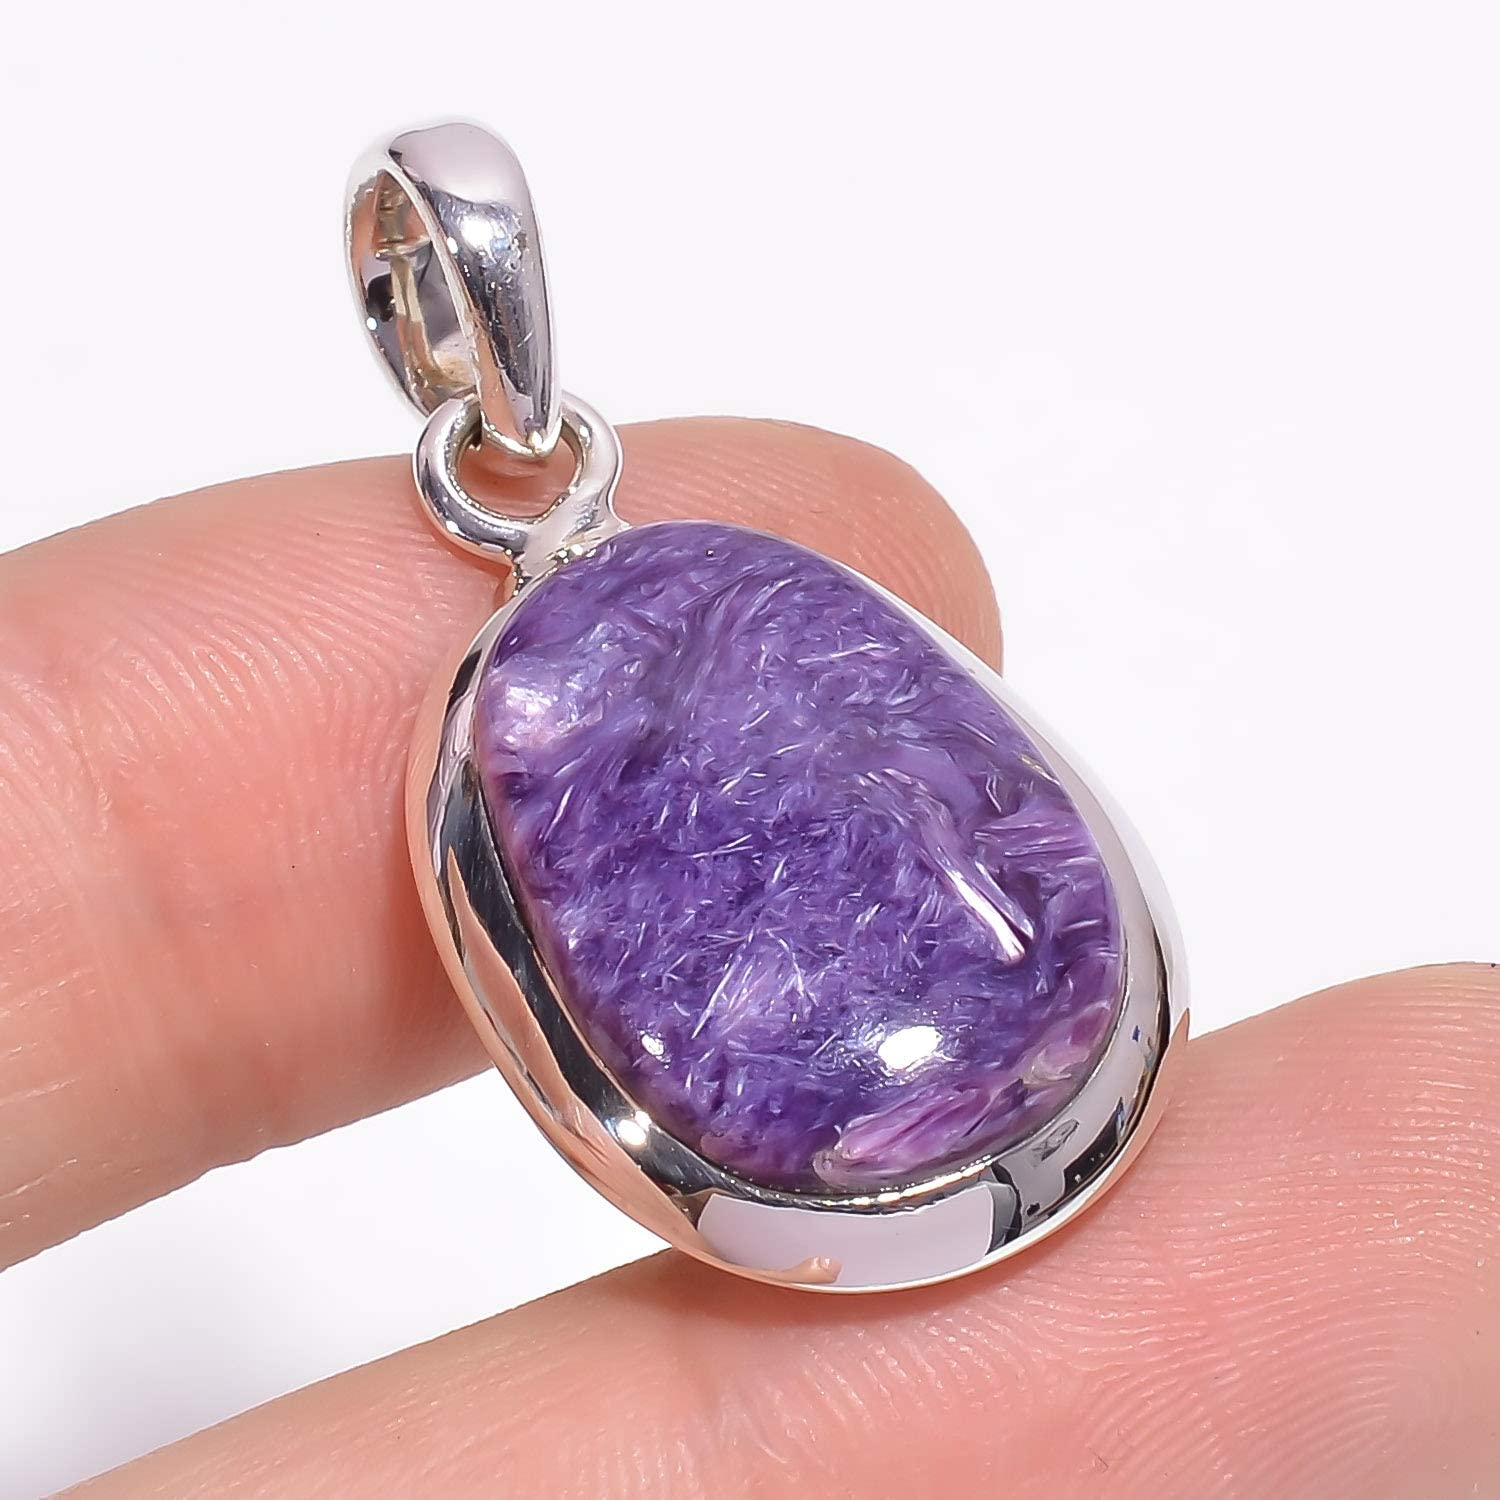 Gift for Women ❤️❤️ Natural Charoite ️Gemstone Pendant//Locket ❤️❤️ 925 Sterling Silver Ladies and Girls Purple Color Handcrafted Designer Stylish Charm Fashion Jewelry Fancy Shape